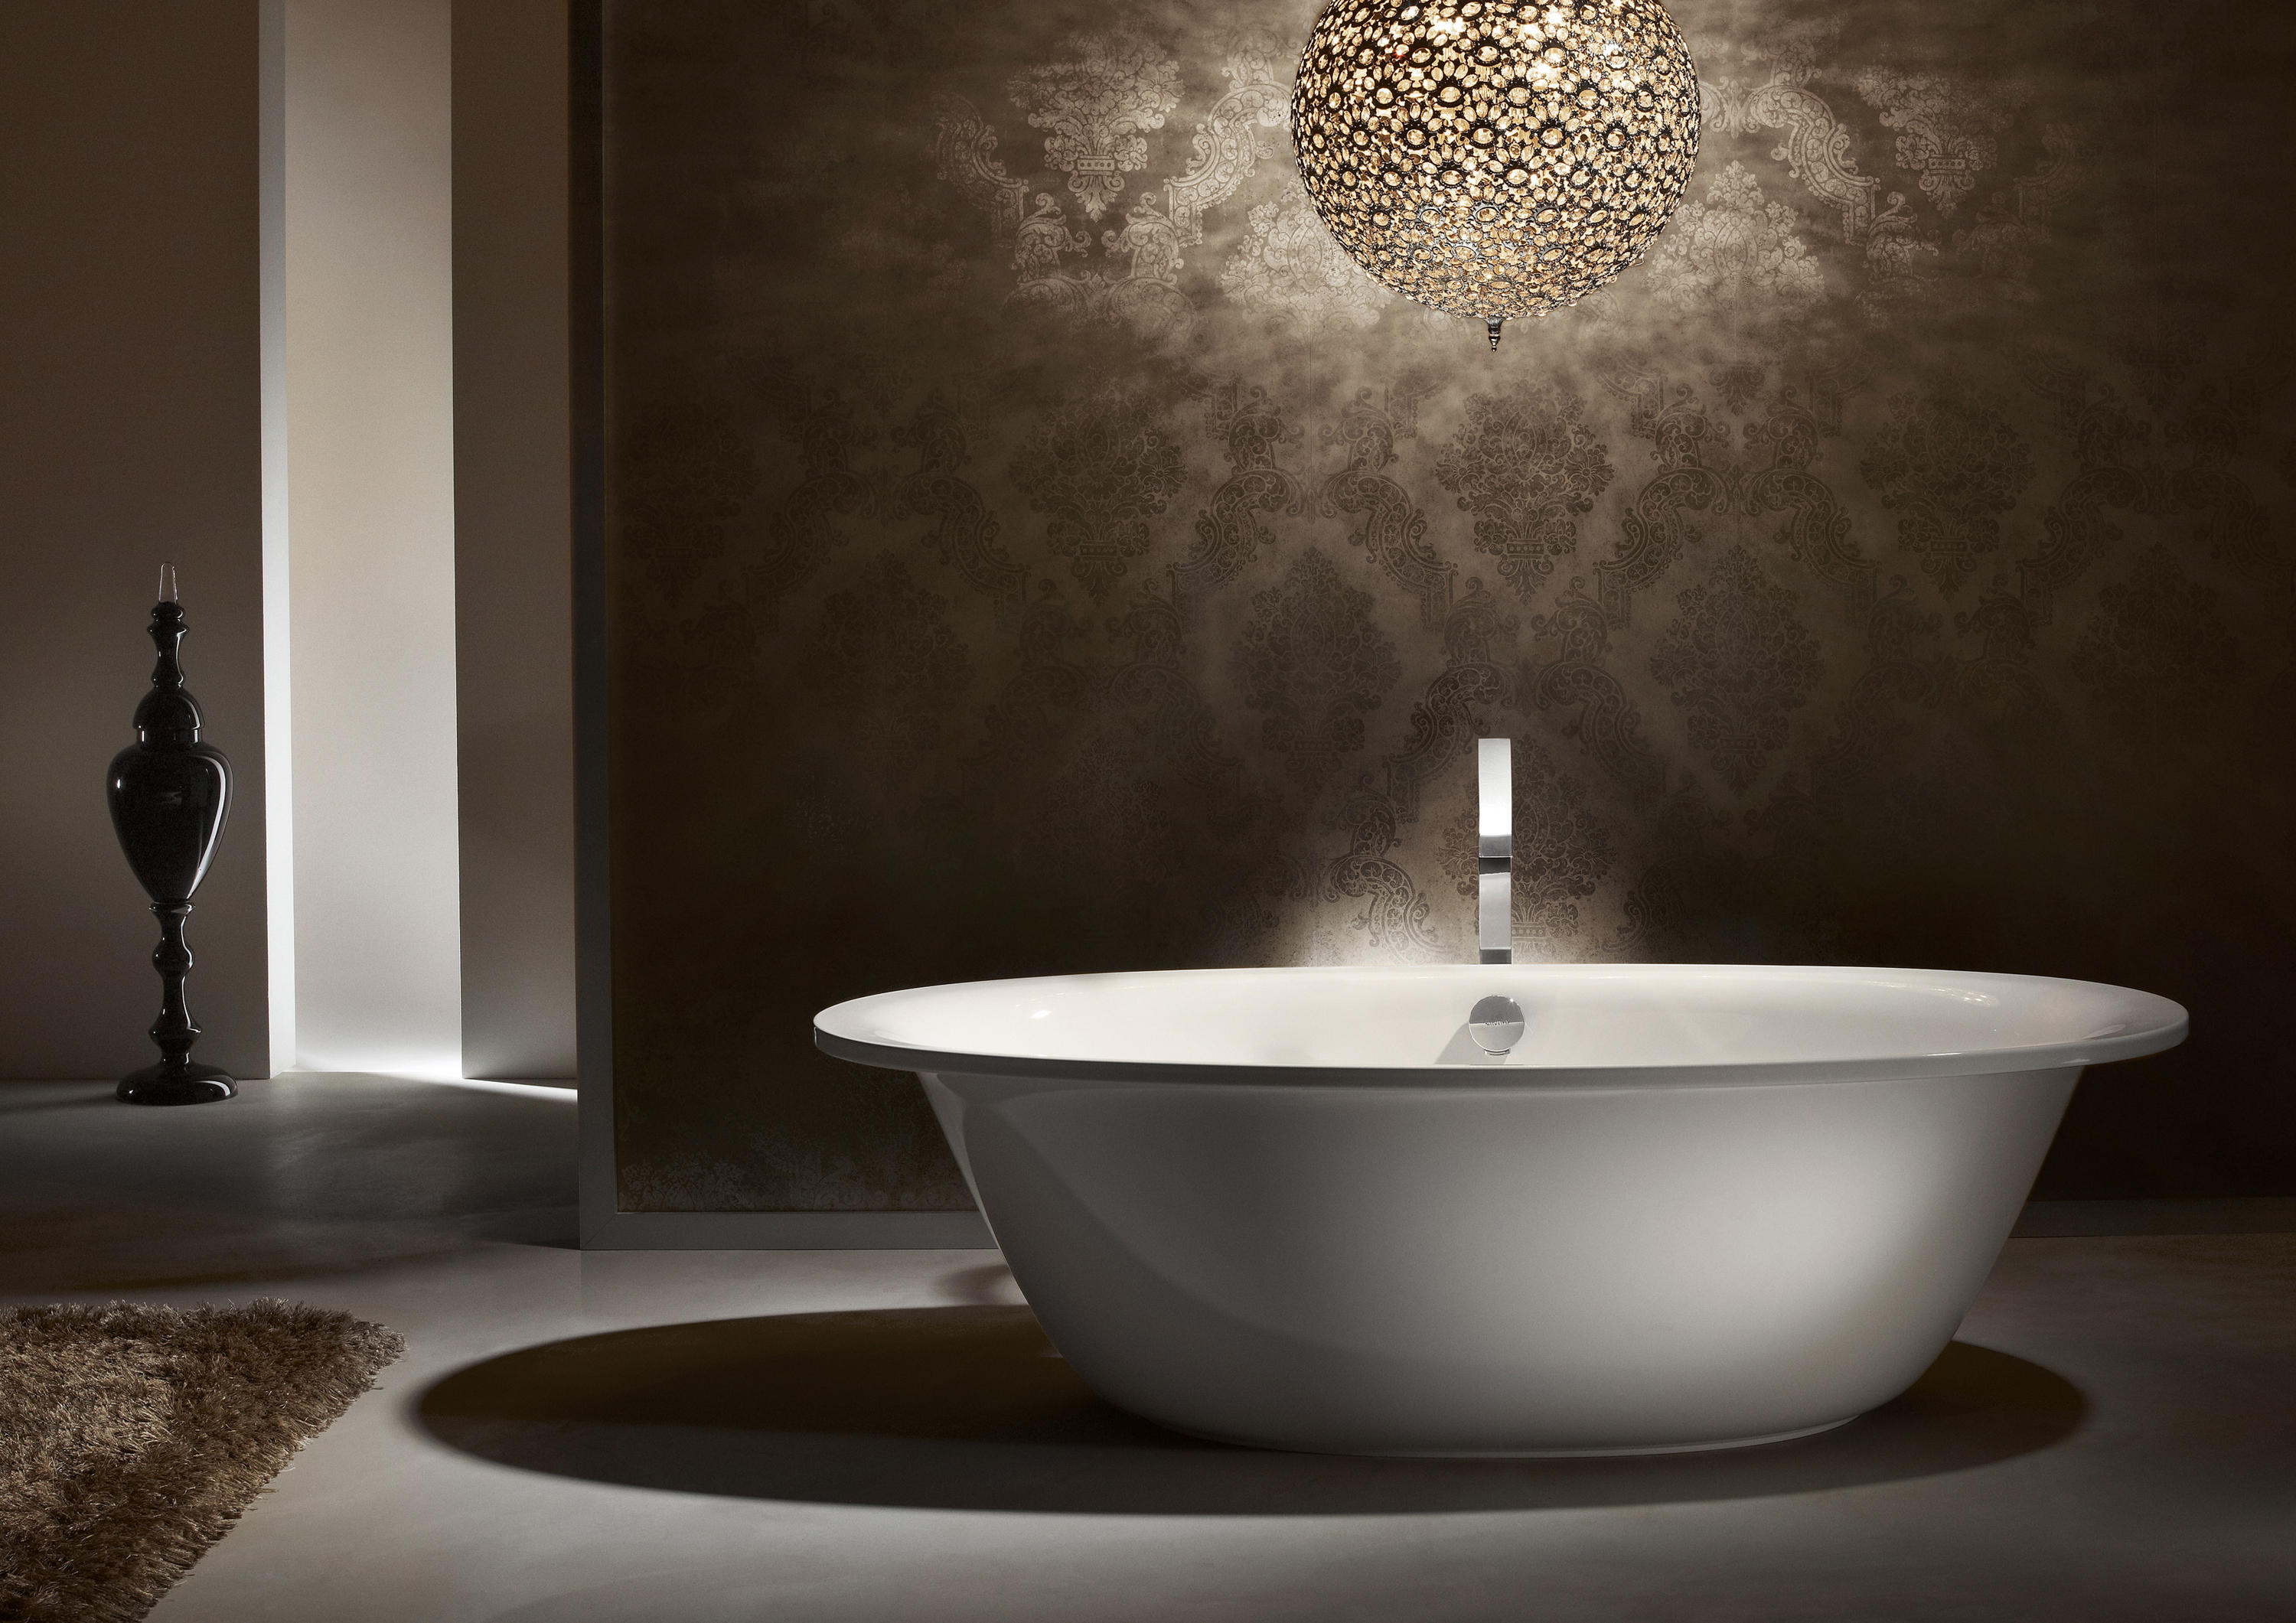 ellipso duo oval built in bathtubs from kaldewei architonic. Black Bedroom Furniture Sets. Home Design Ideas